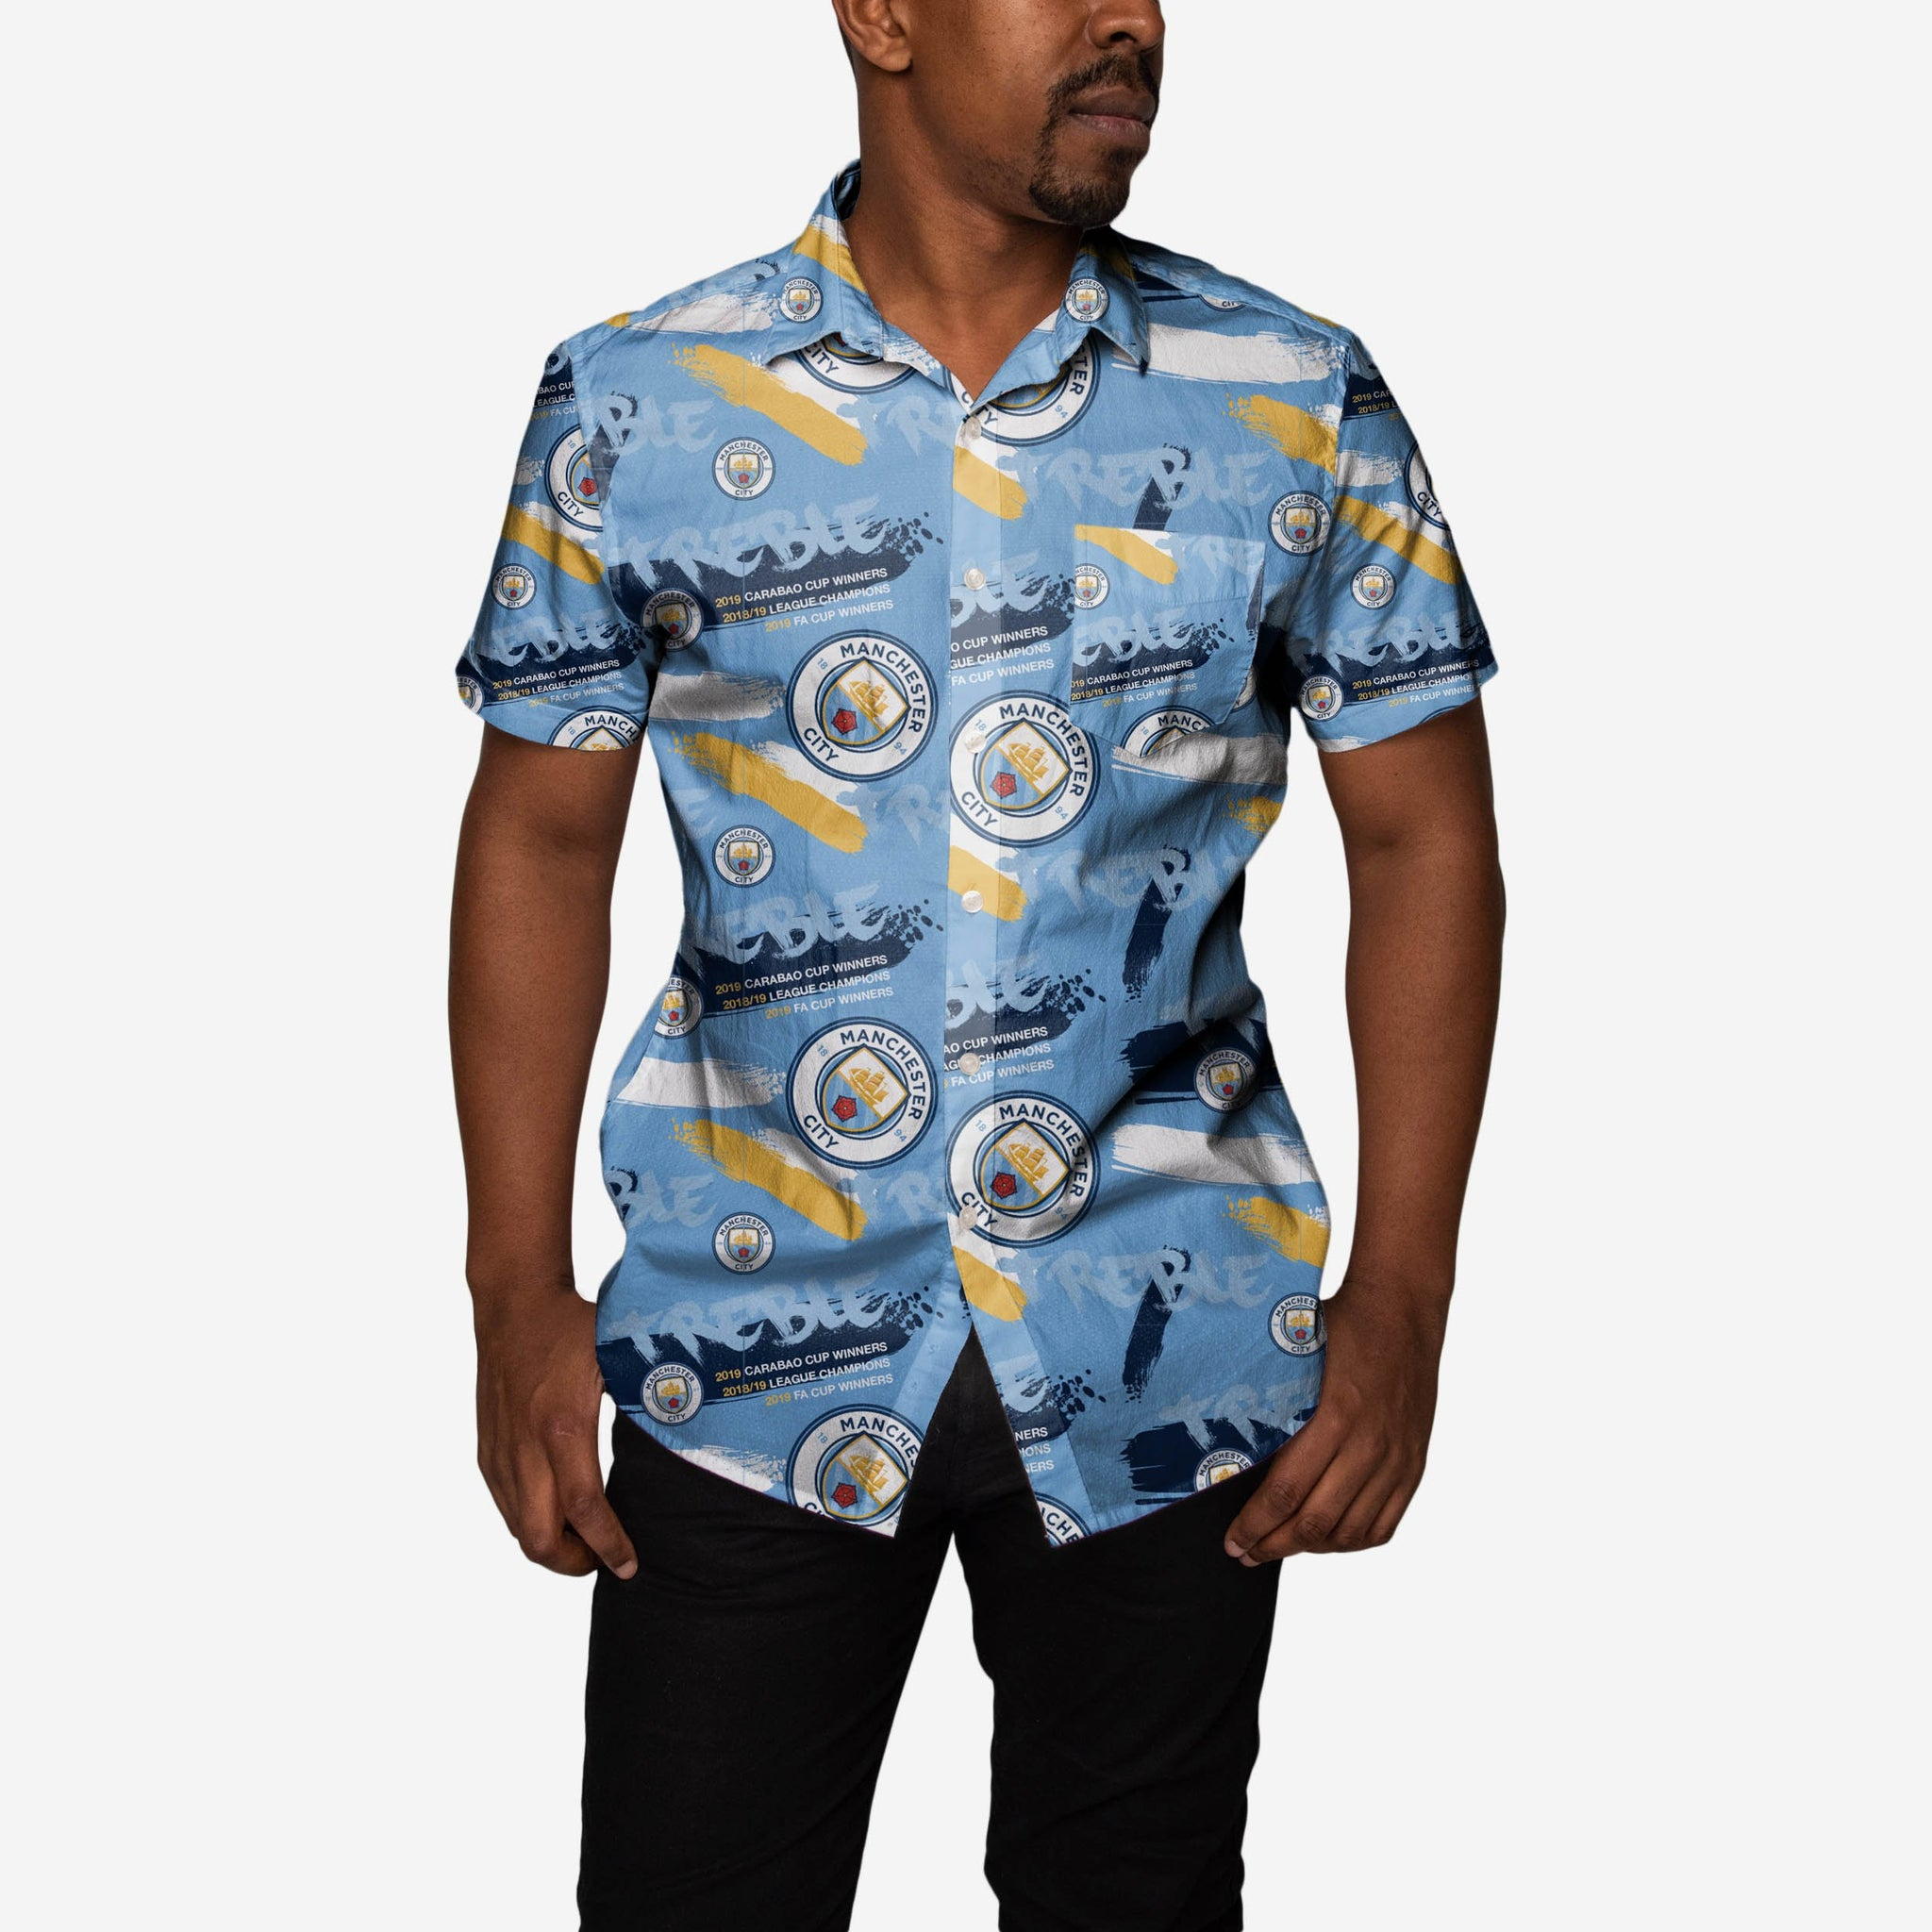 122b30bcba7 Manchester City FC 2018-19 Treble Winners Floral Button Up Shirt FOCO - FOCO .